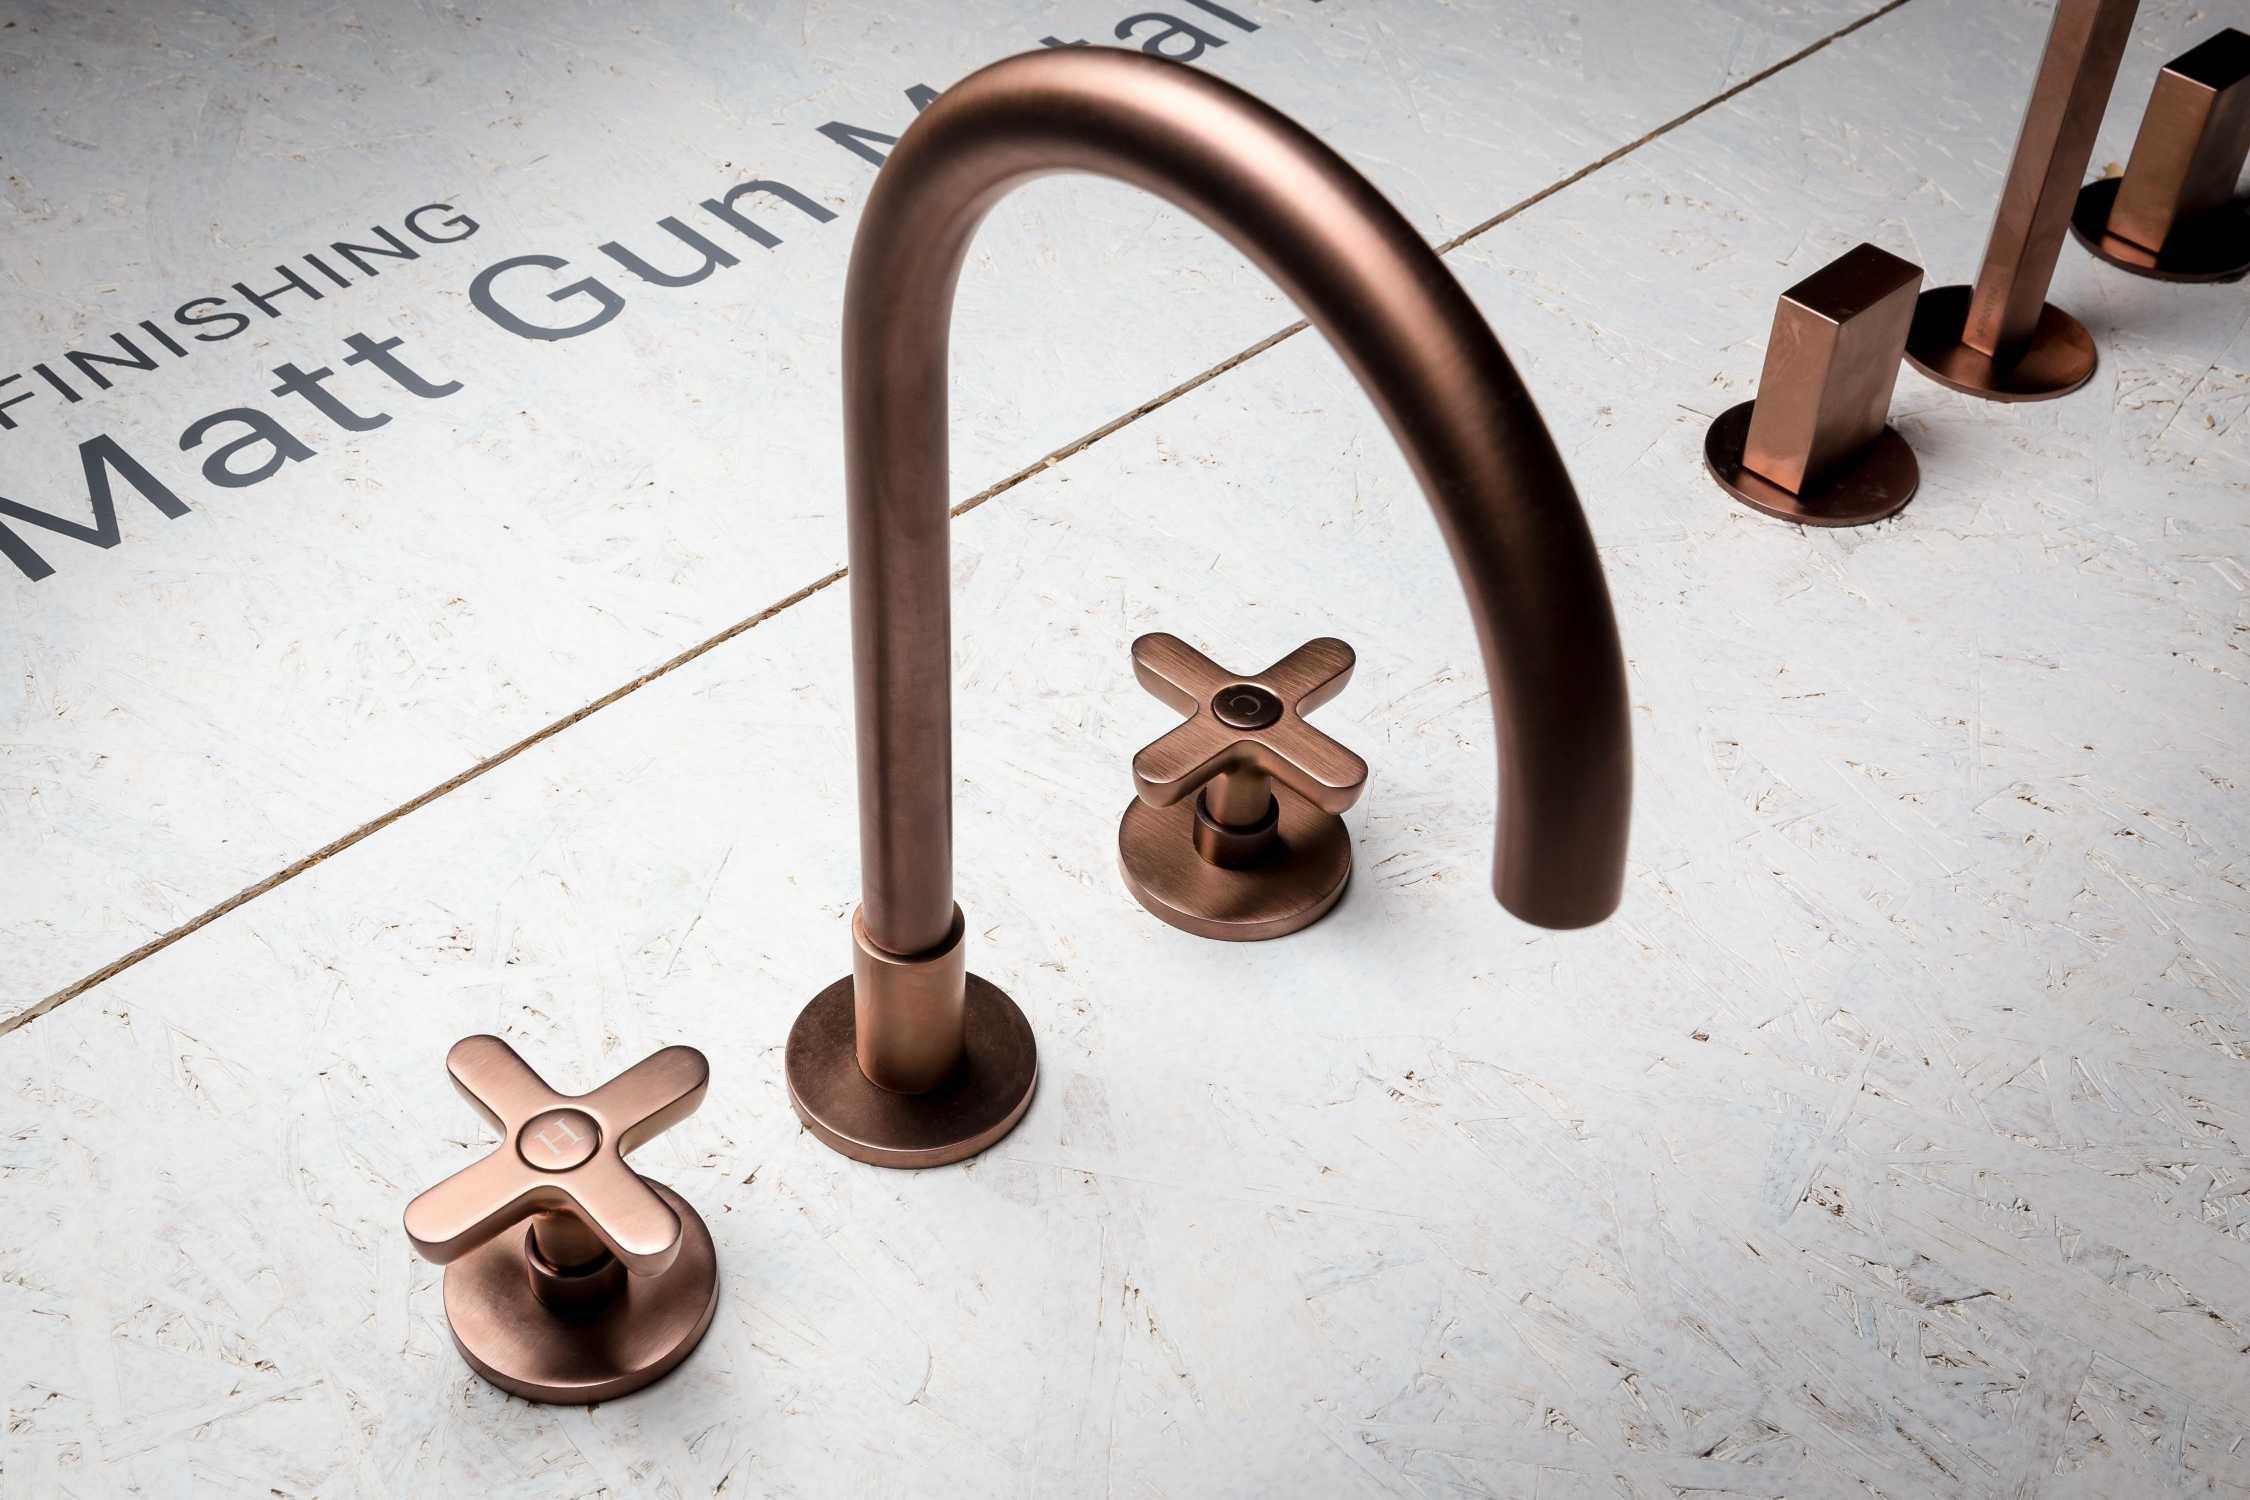 fantini-faucets-awesome-icona-for-fantini-bathroom-faucets-pinterest-of-fantini-faucets.jpg